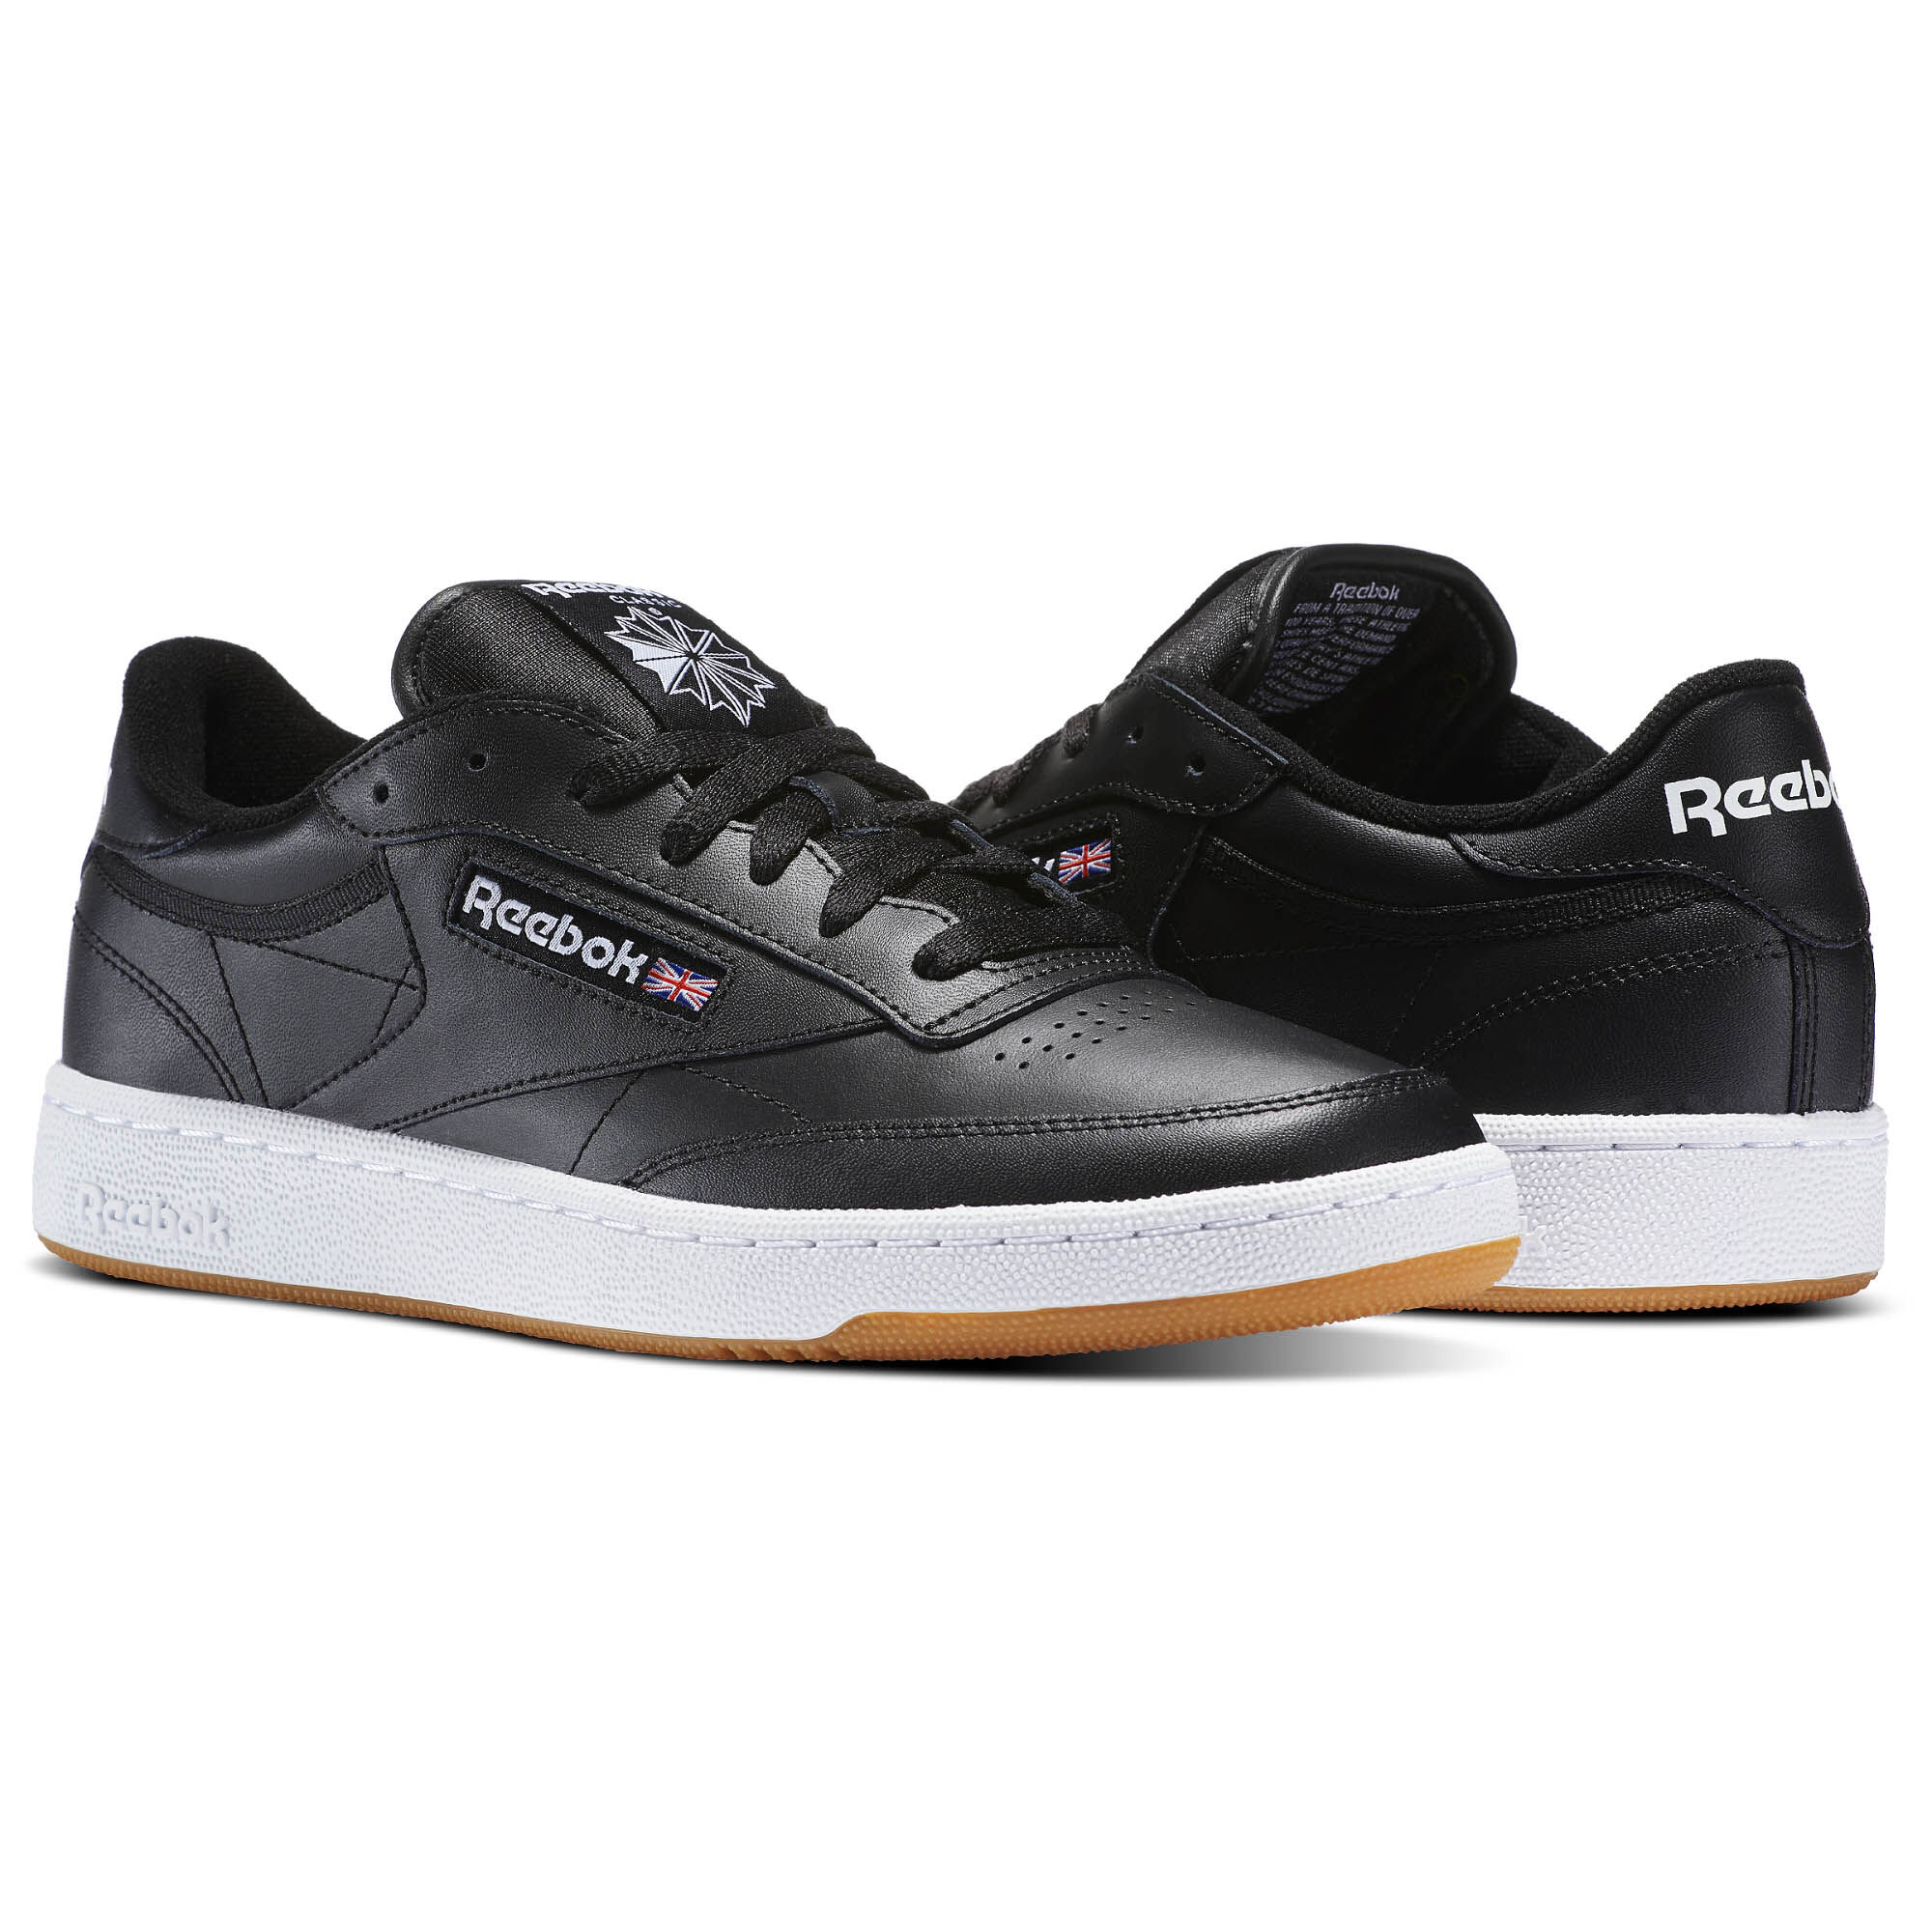 Reebok - Club C 85 Intense Black/White-Gum AR0458